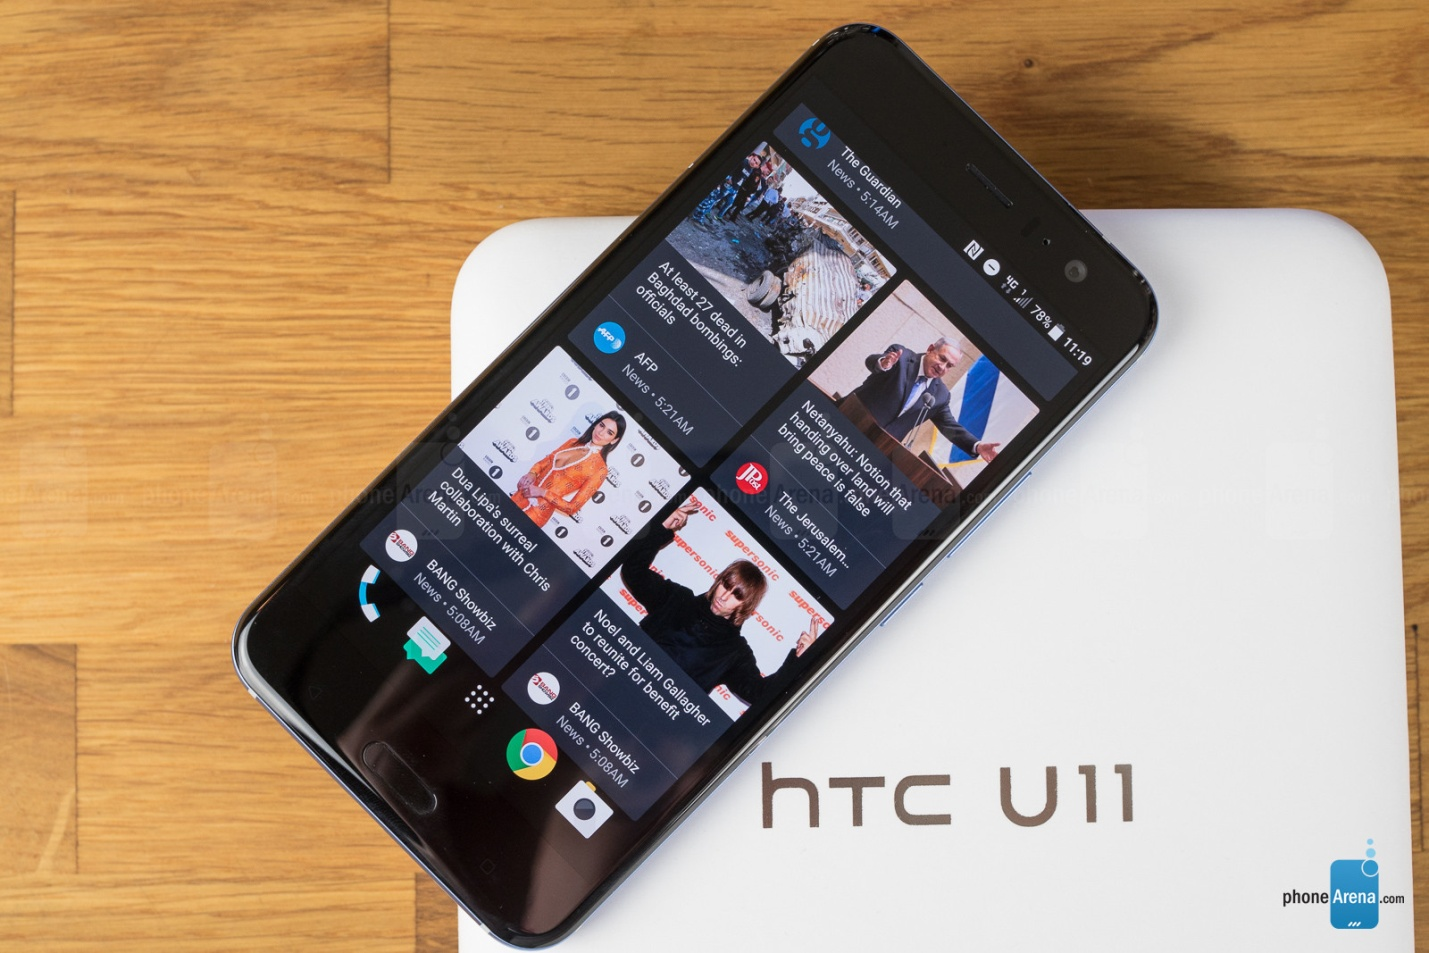 C:\Users\Alexey\Pictures\HTC U11\HTC-U11-Review-001.jpg